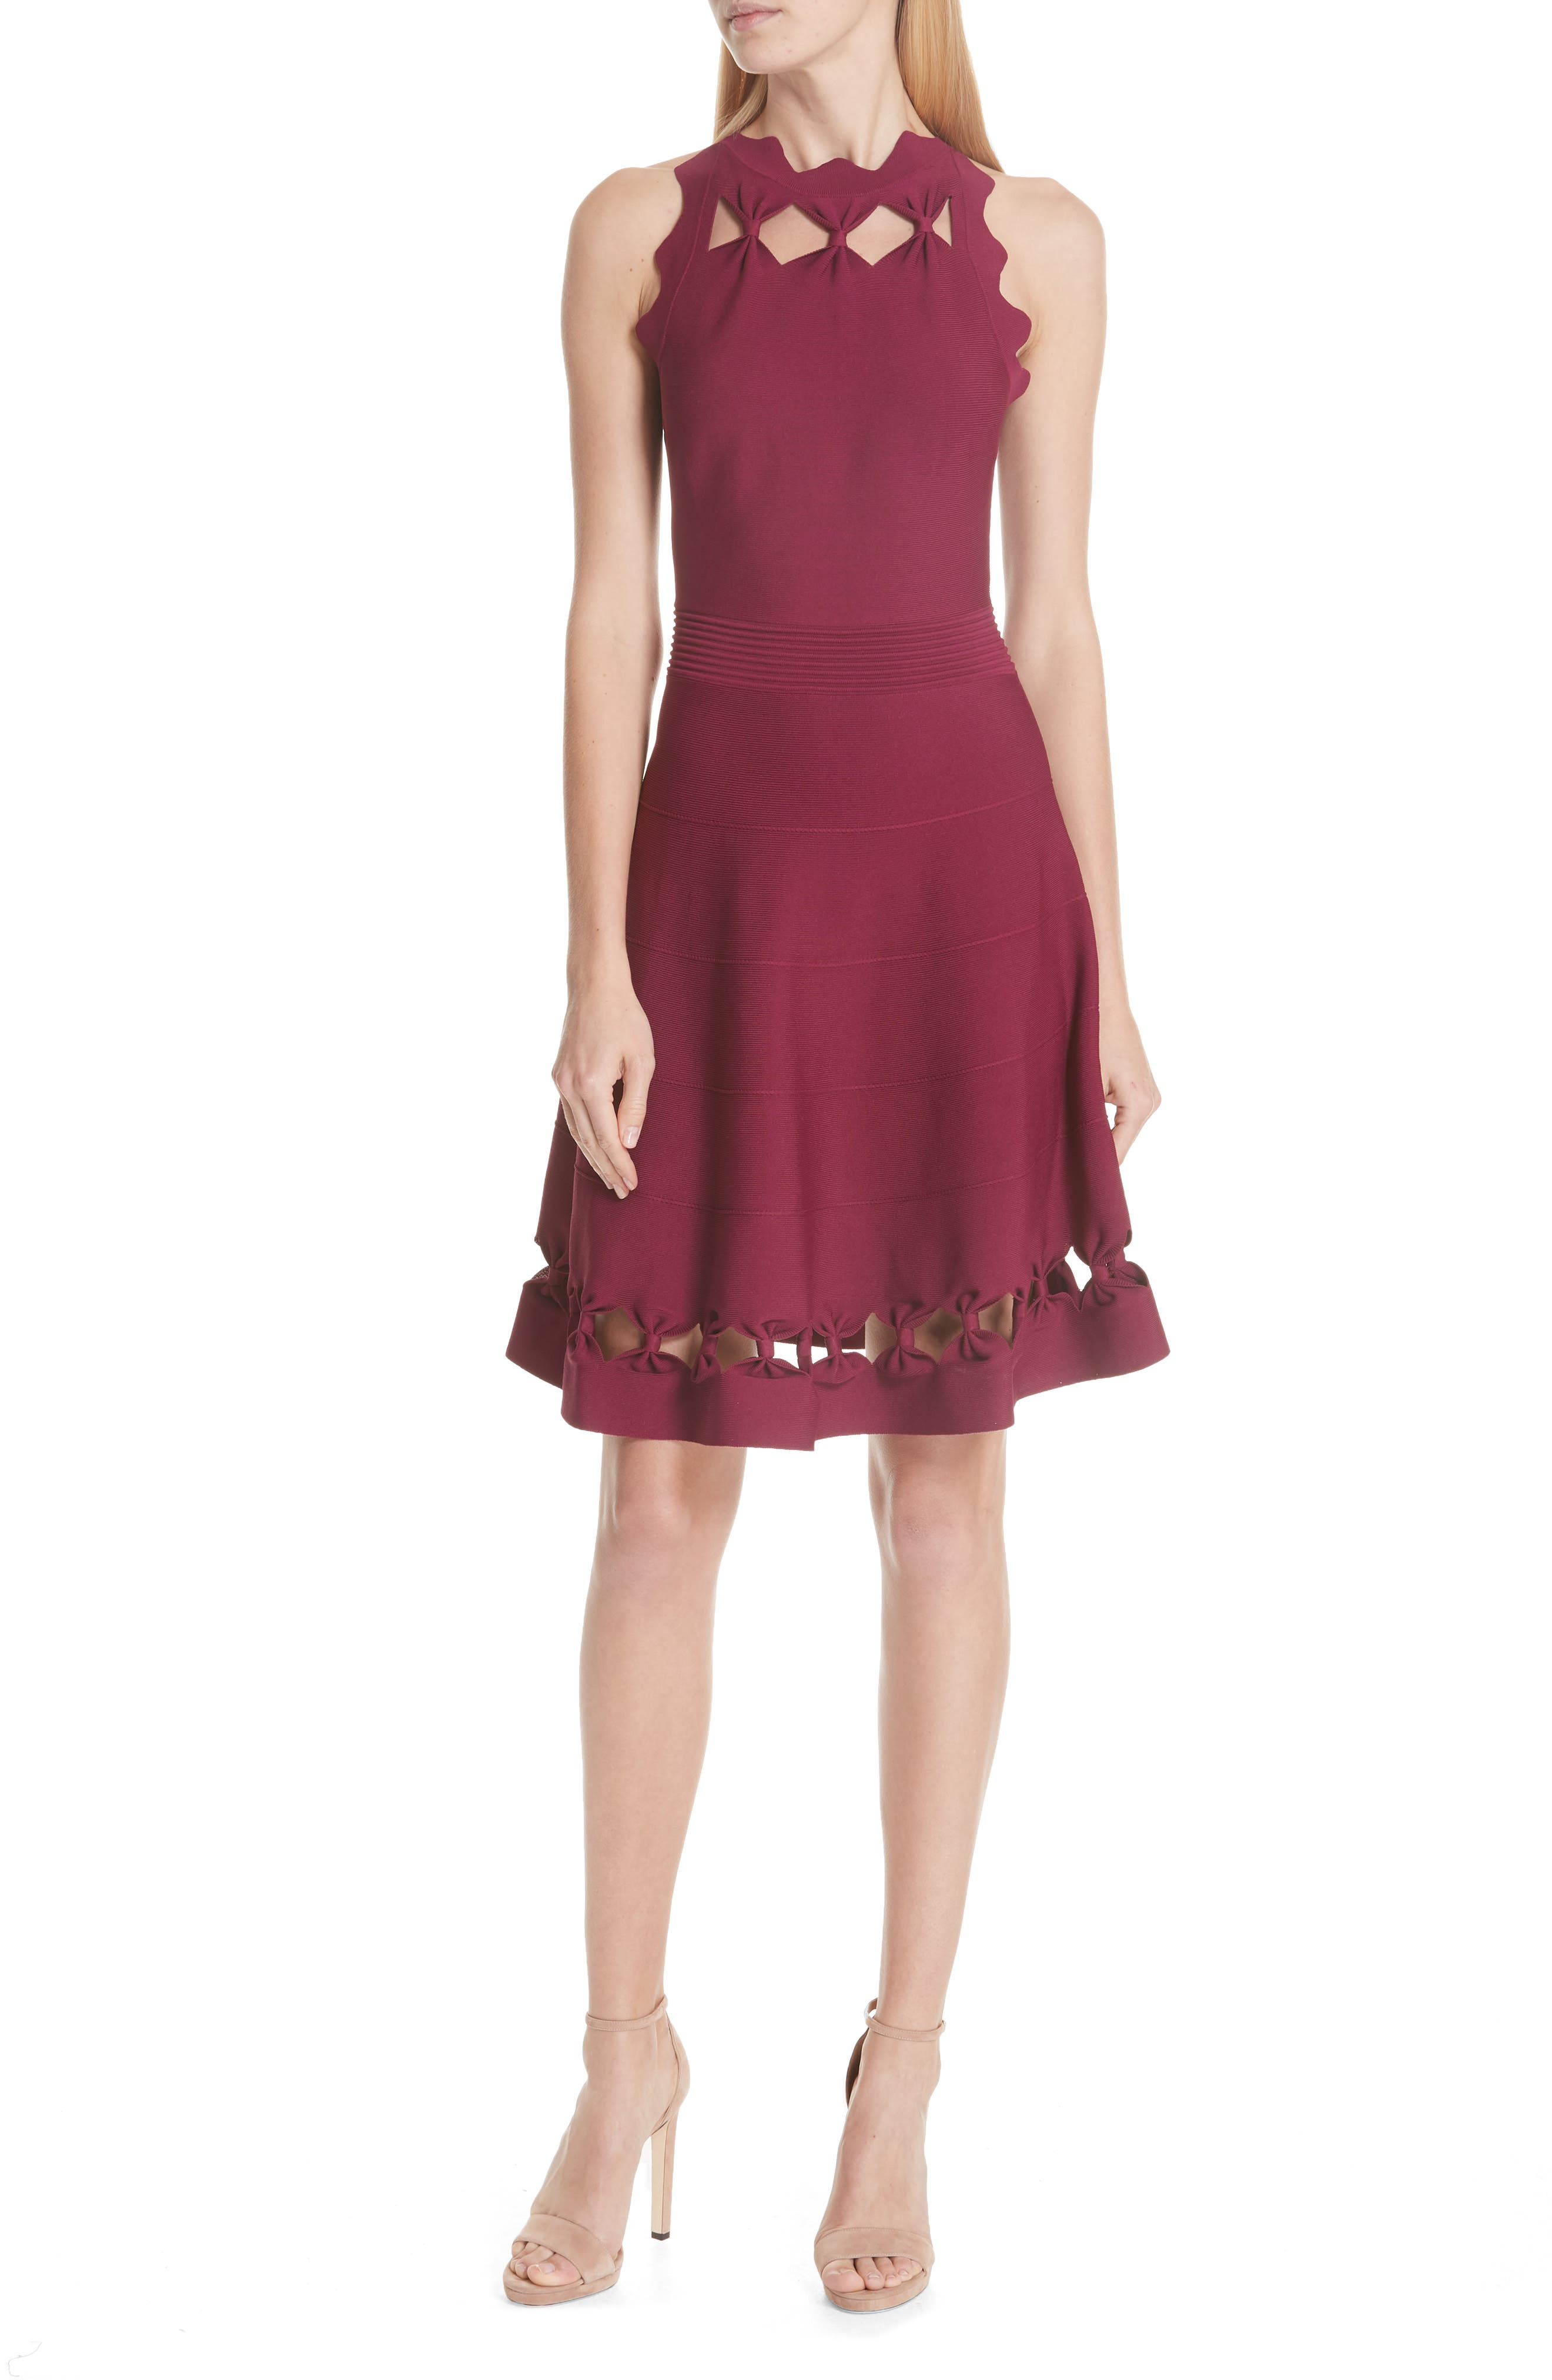 Cherina Bow Detail Fit & Flare Knit Dress,                         Main,                         color, Maroon